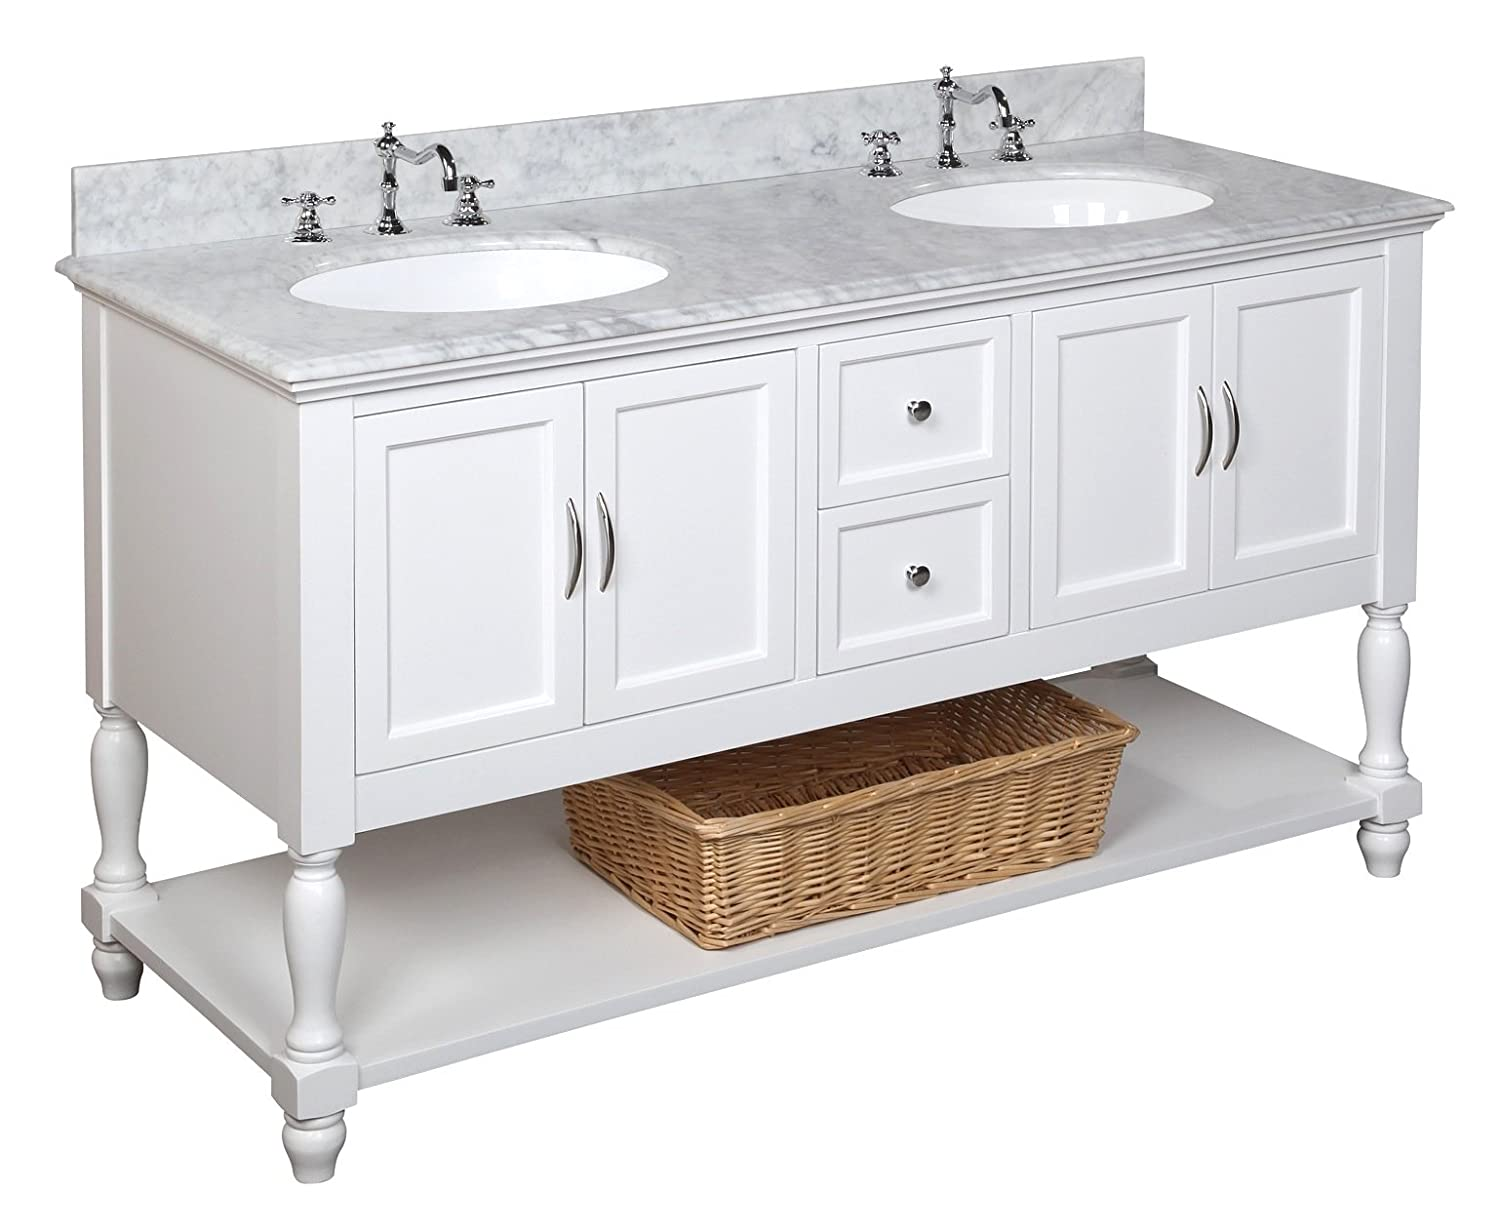 Double Sink Bathroom Cabinets. Kitchen Bath Collection KBC667WTCARR Beverly Double Sink Bathroom Vanity  with Marble Countertop Cabinet Soft Close Function and Undermount Ceramic